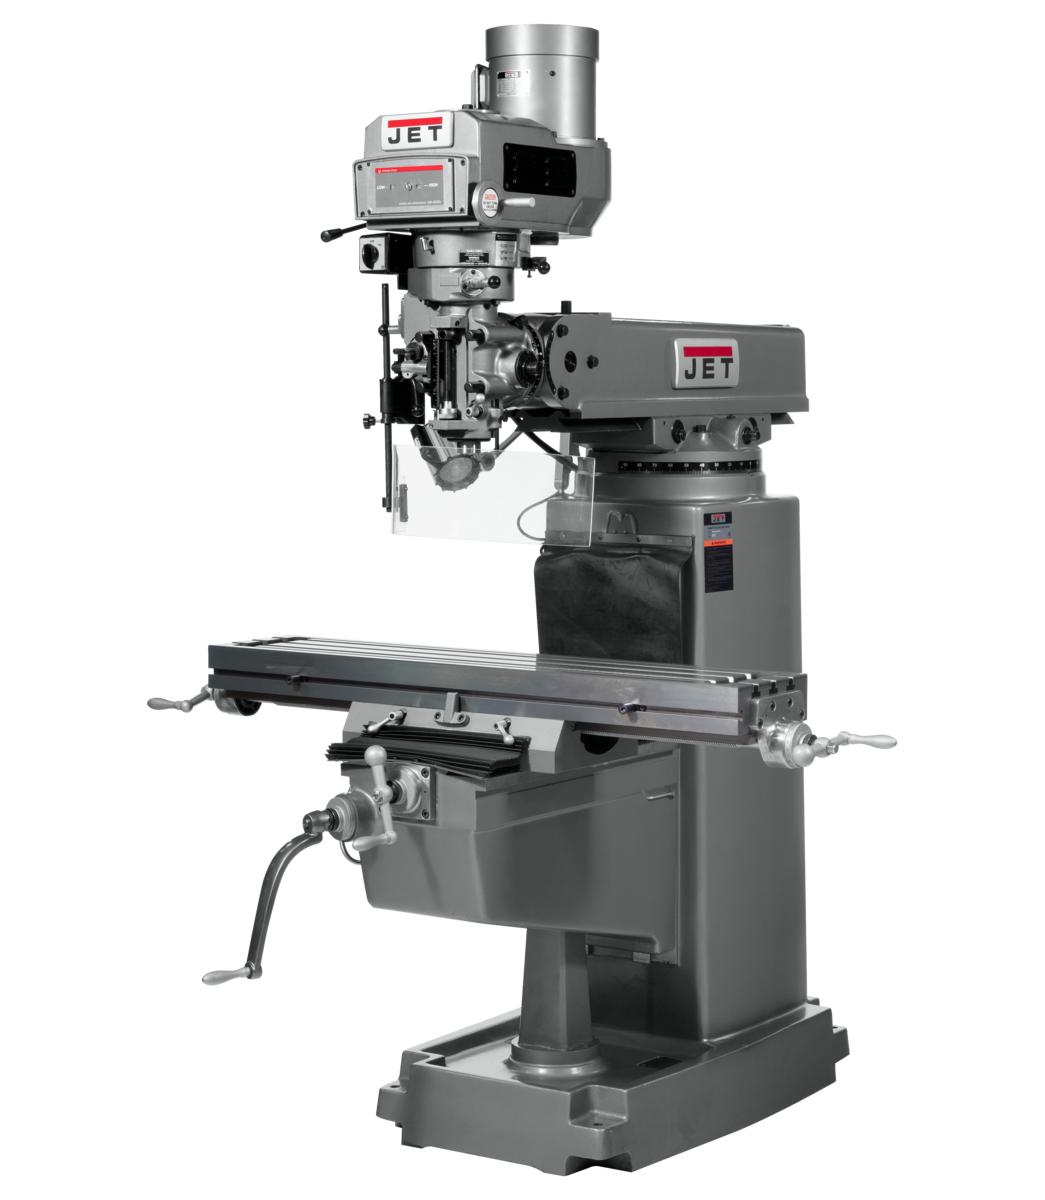 JTM-1050VS2 Mill With 3-Axis ACU-RITE 203 DRO (Quill) With X and Y-Axis Powerfeeds and Power Draw Ba